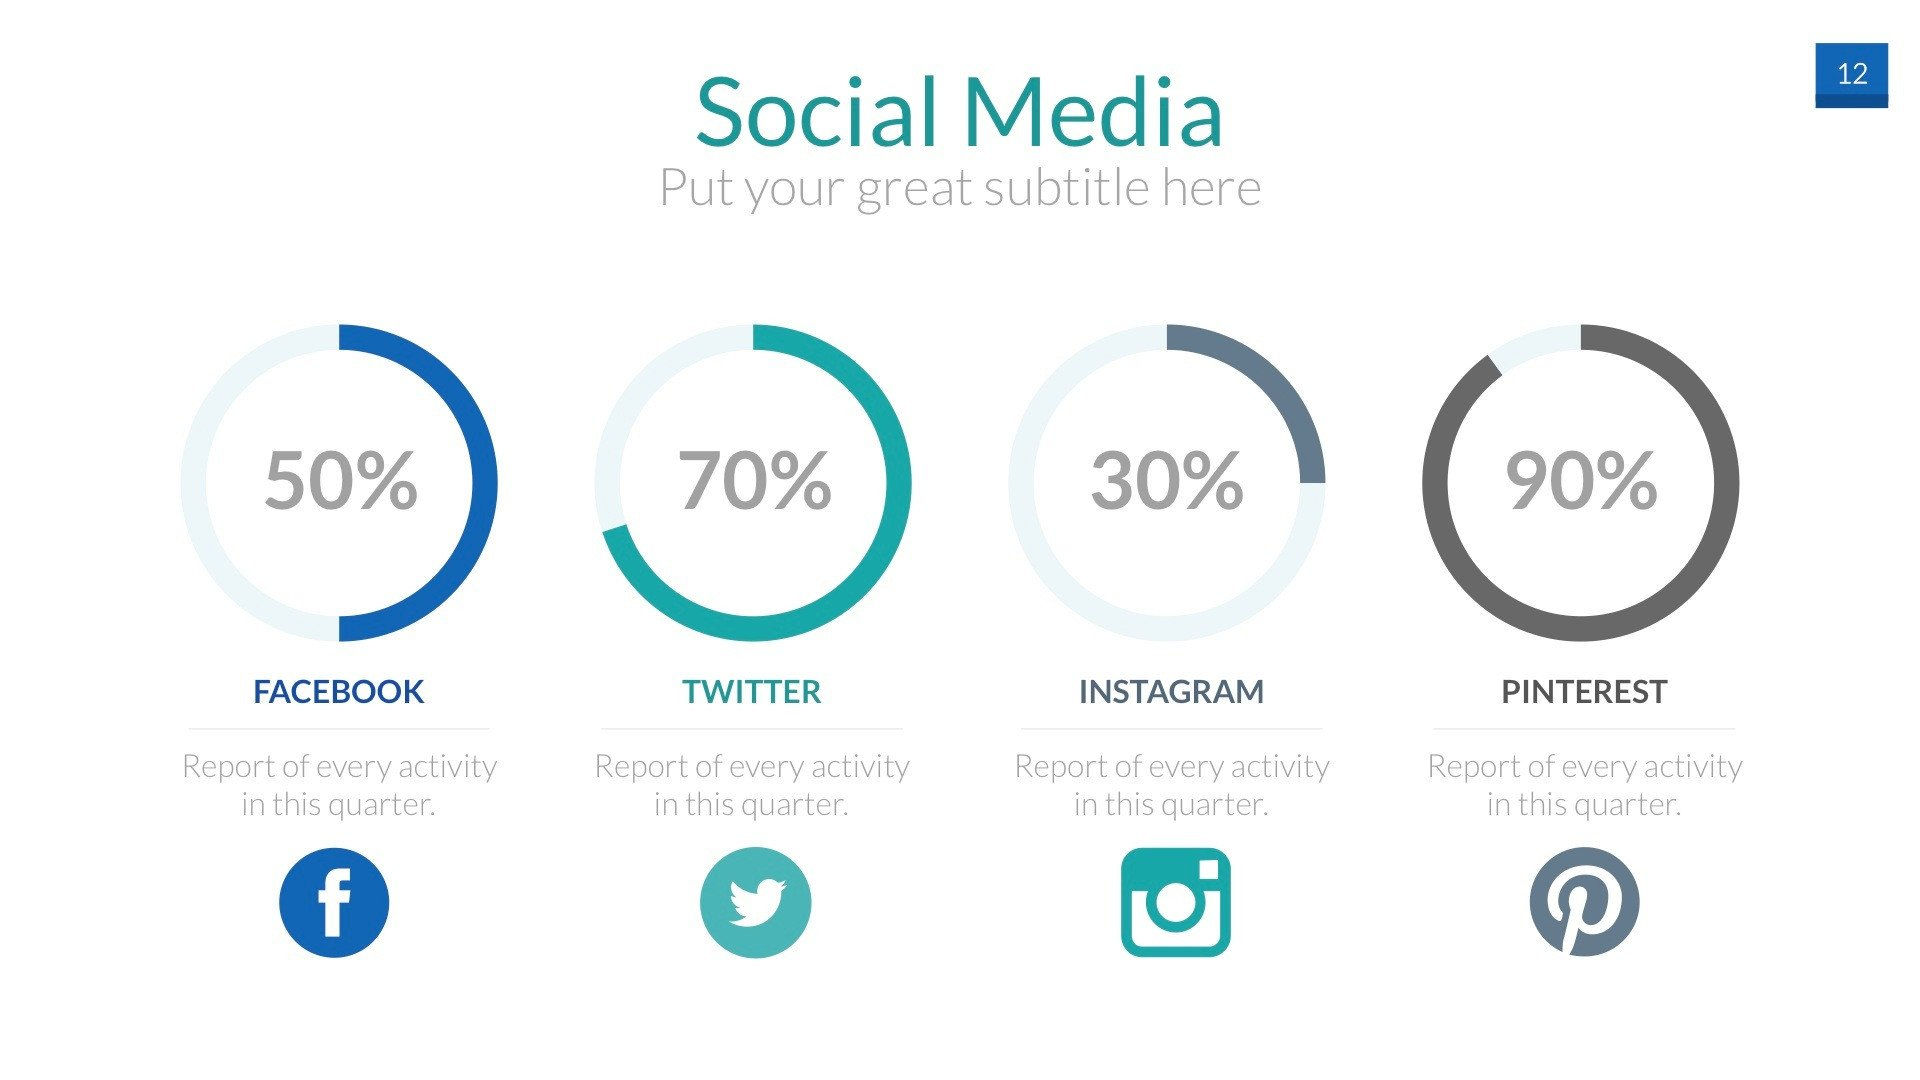 Social Media Ppt Templates social Media Powerpoint Presentation Template by